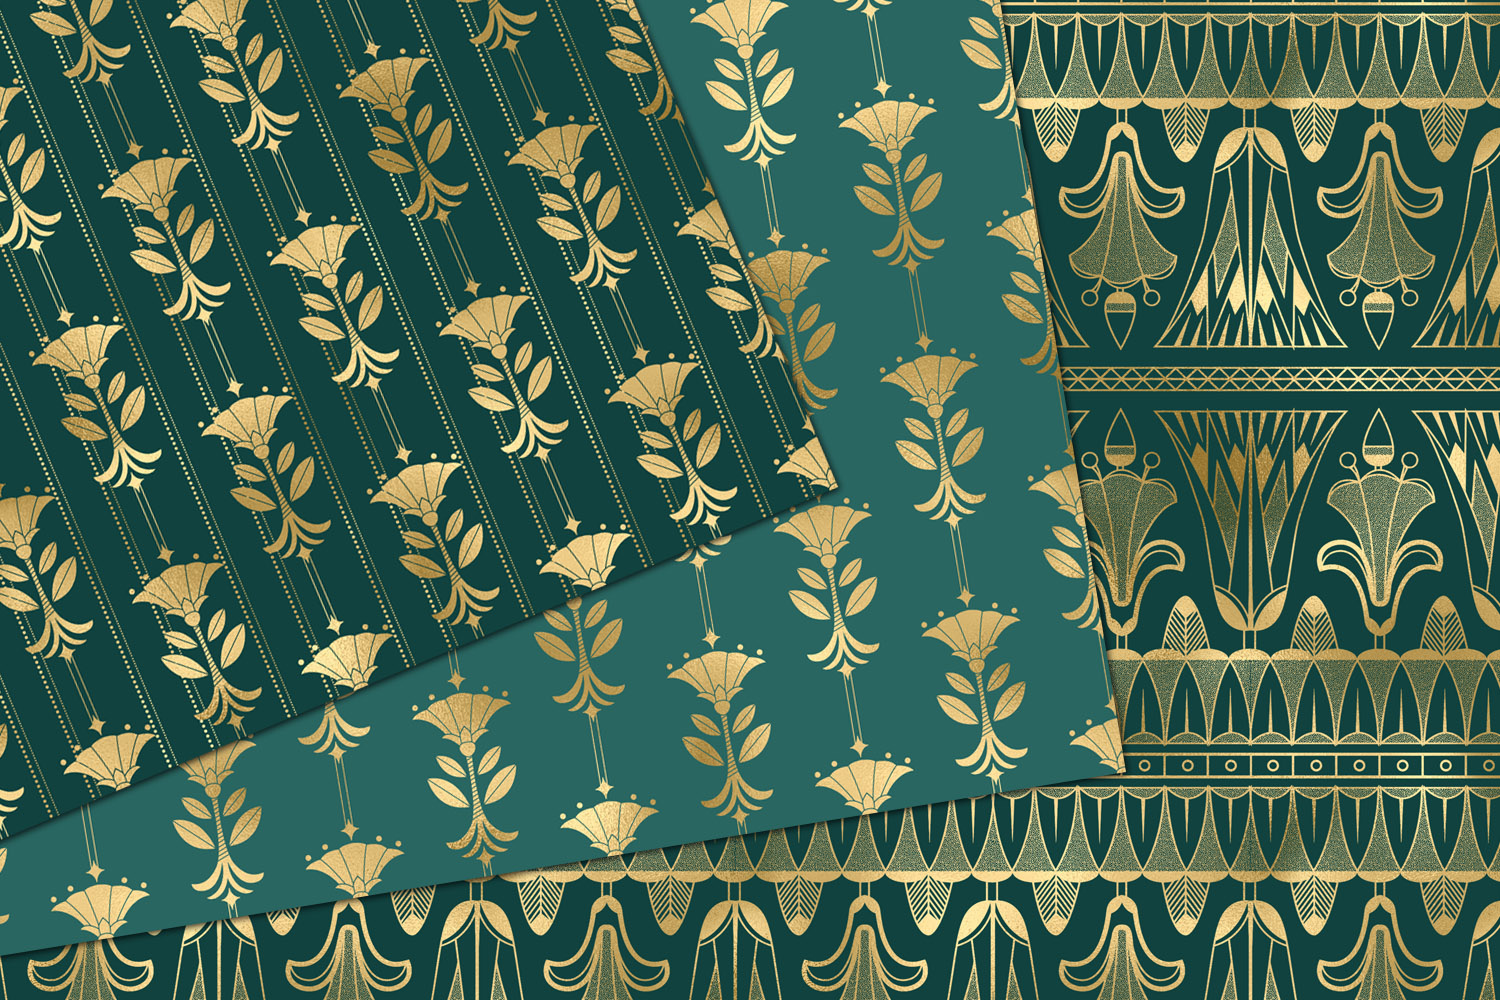 Teal and Gold Art Deco Digital Paper example image 3